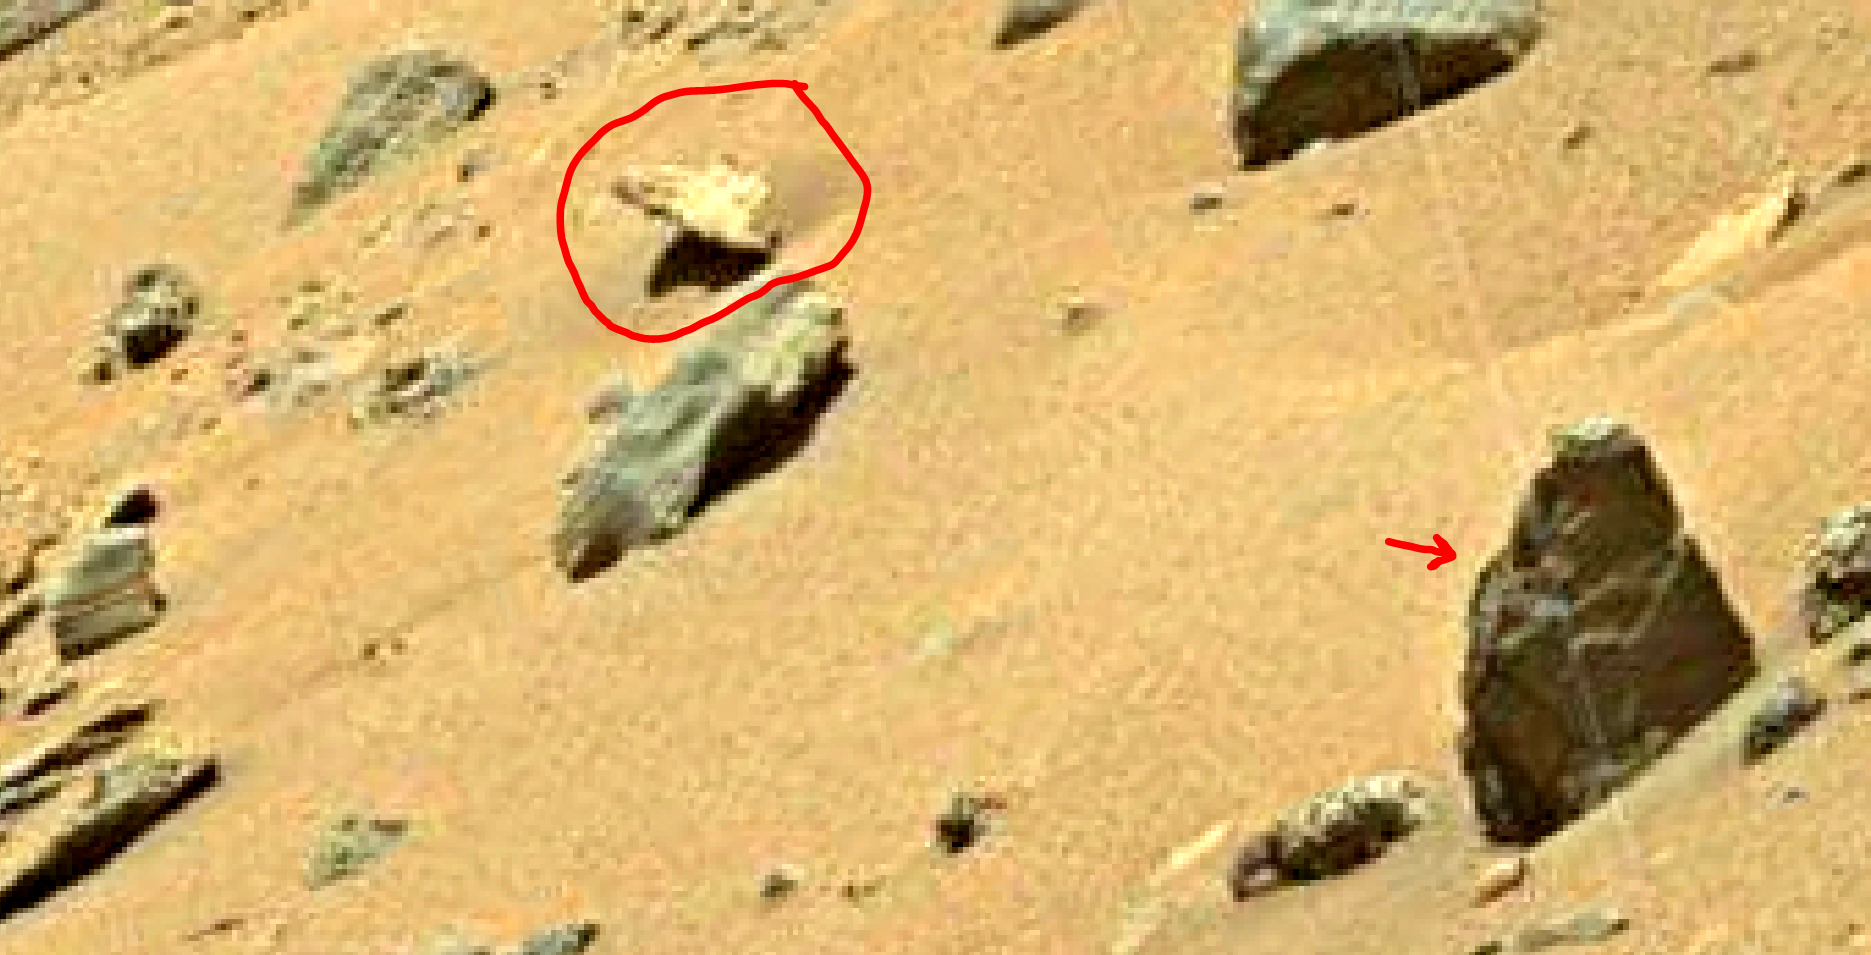 mars sol 1401 anomaly artifacts 8 was life on mars